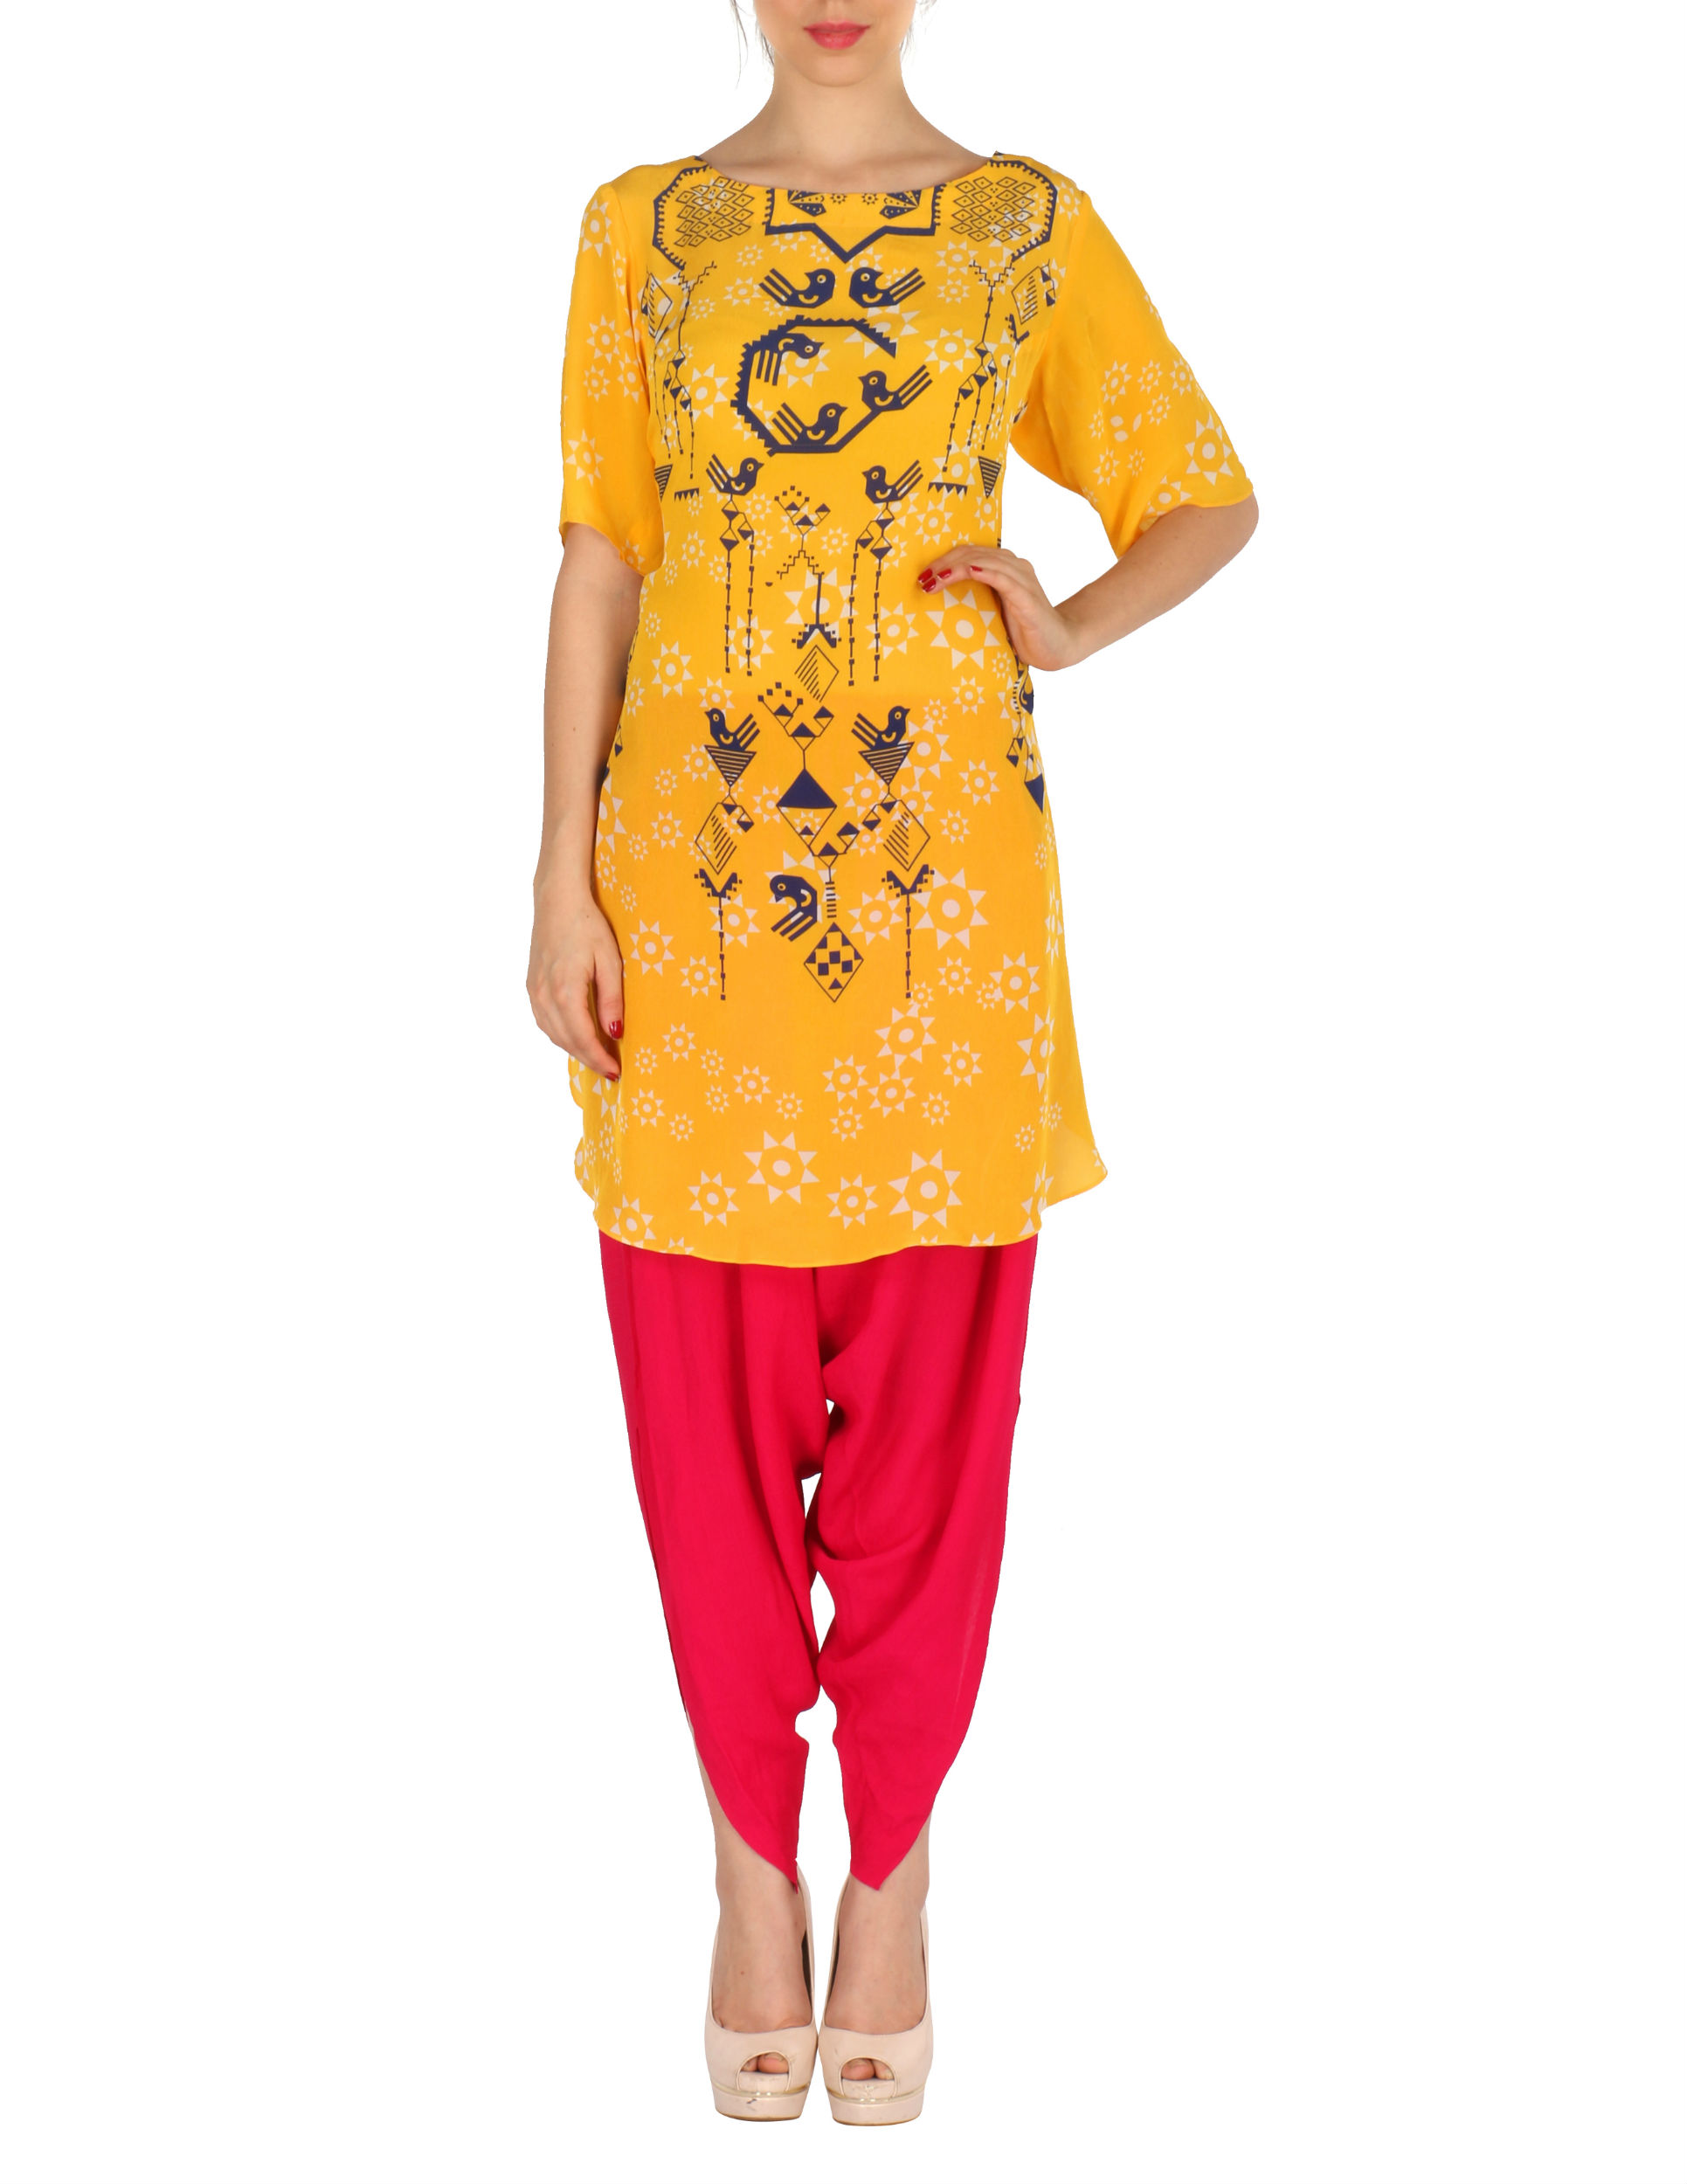 Kurta with patiala set in yellow and red